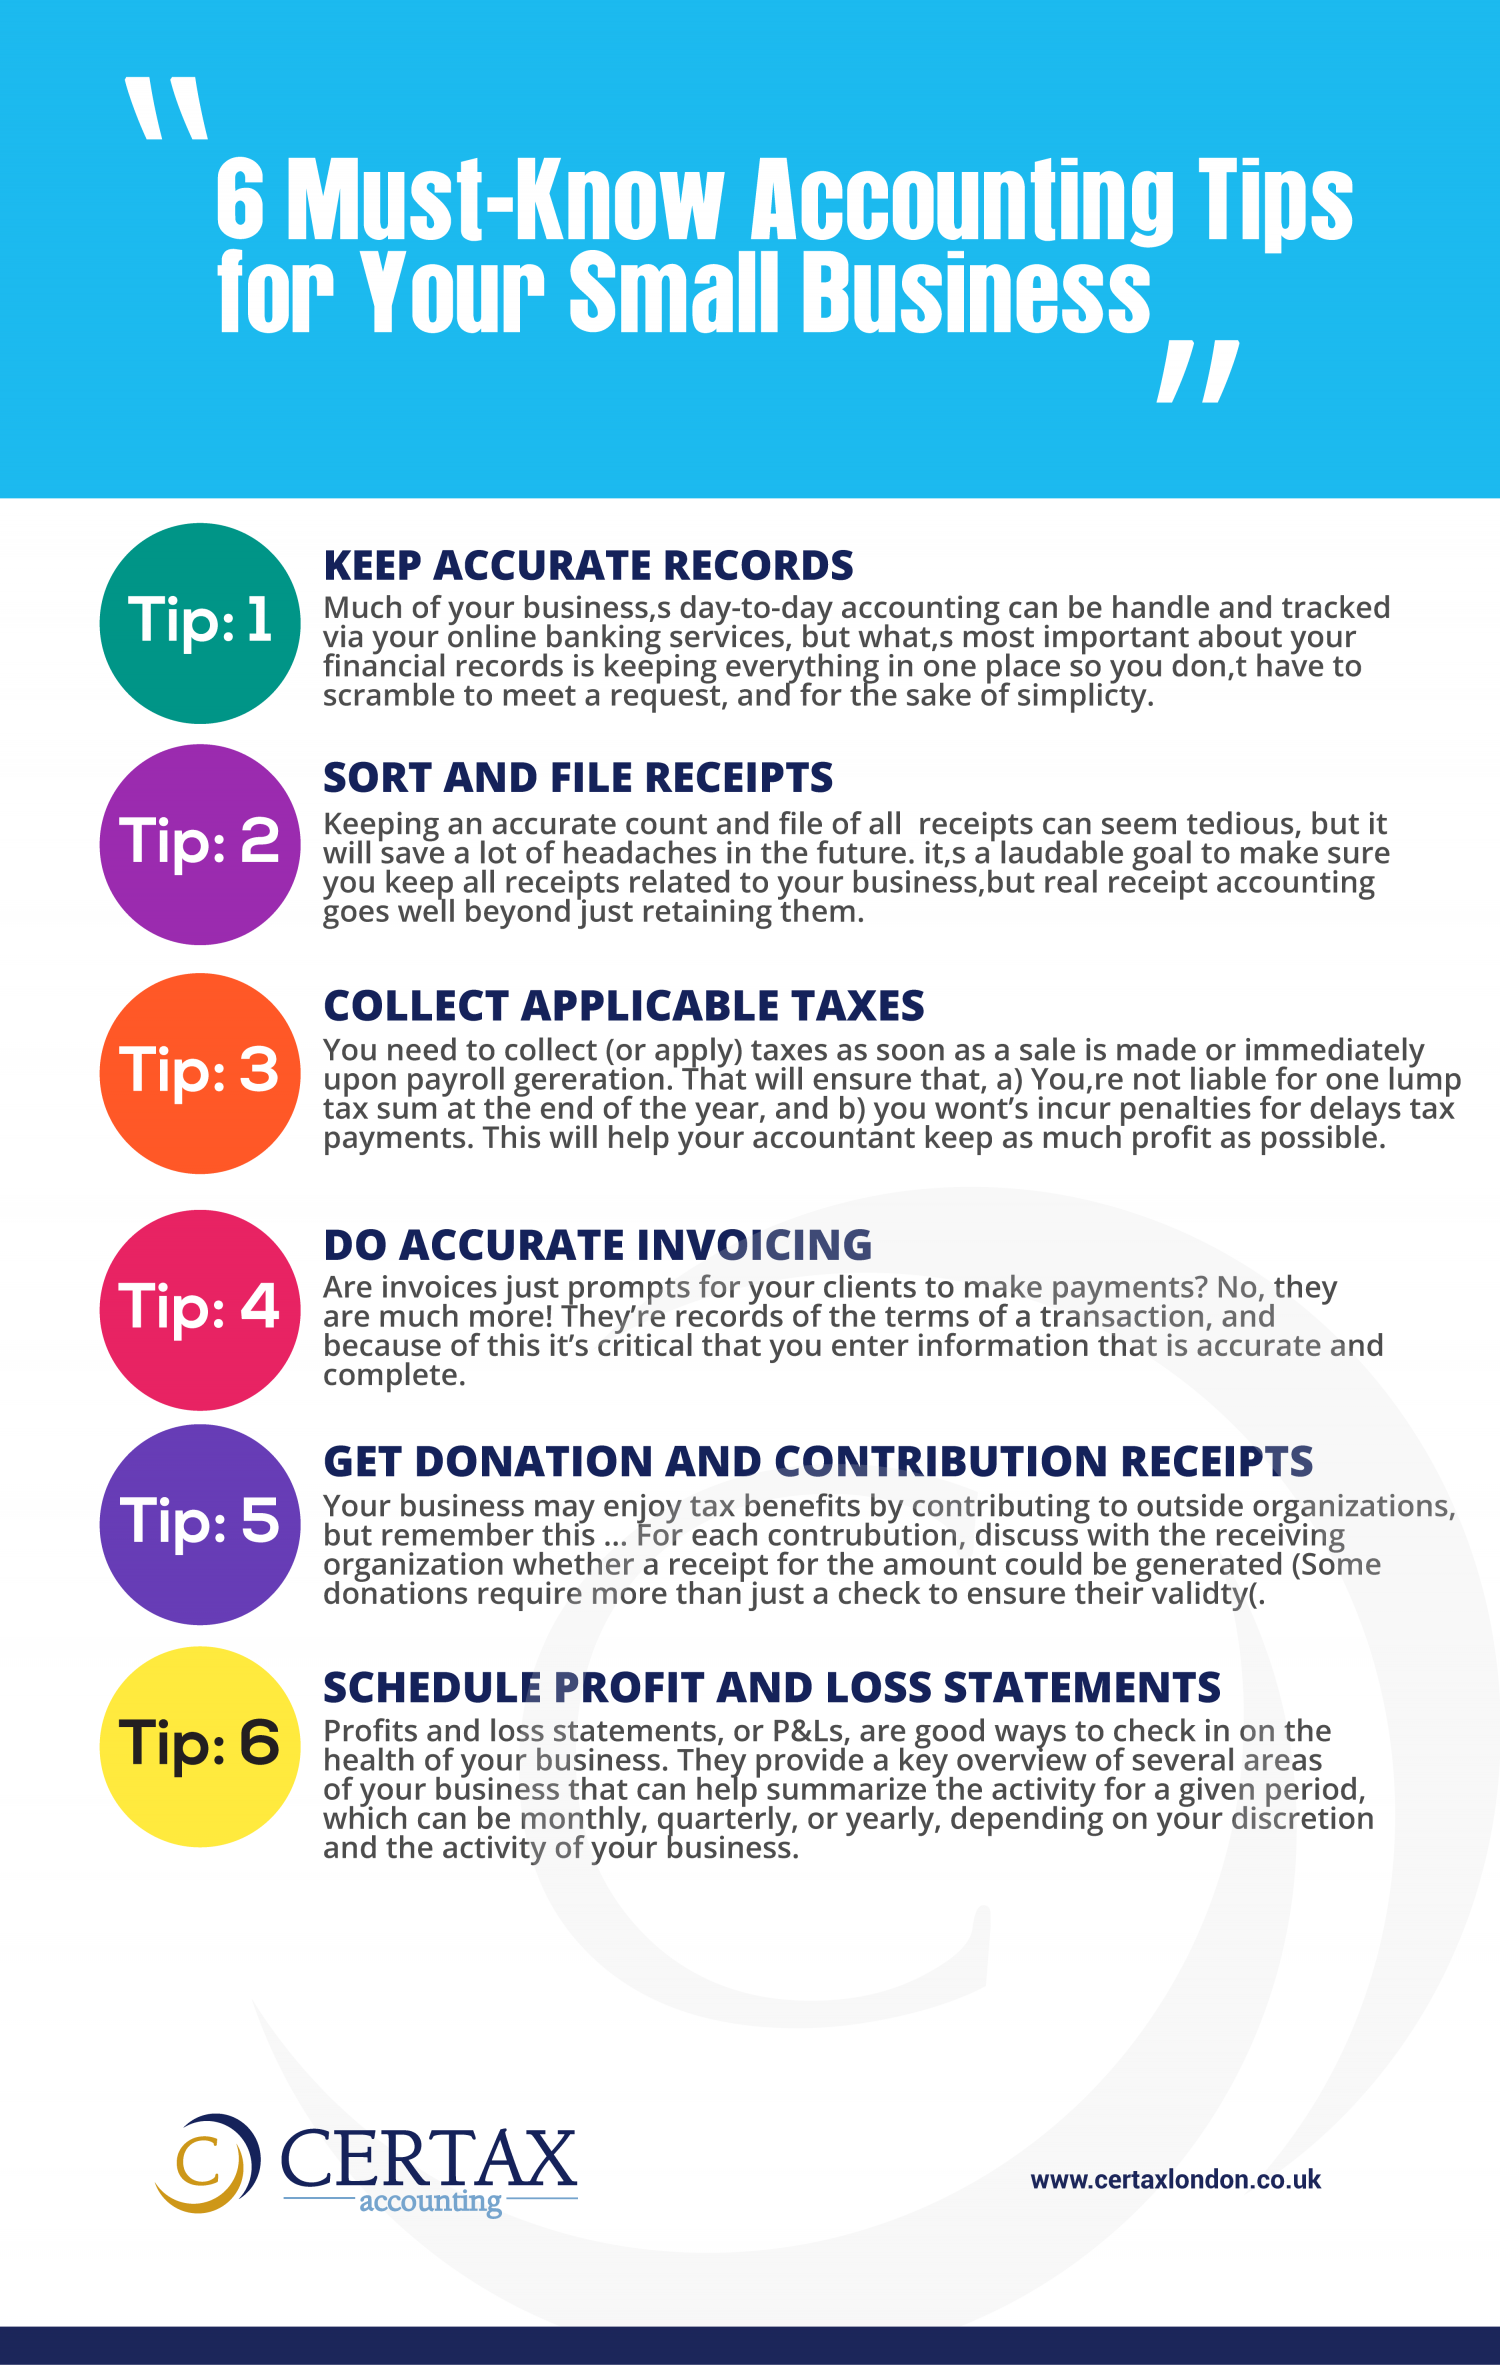 6 Must know accounting tips for small business Infographic